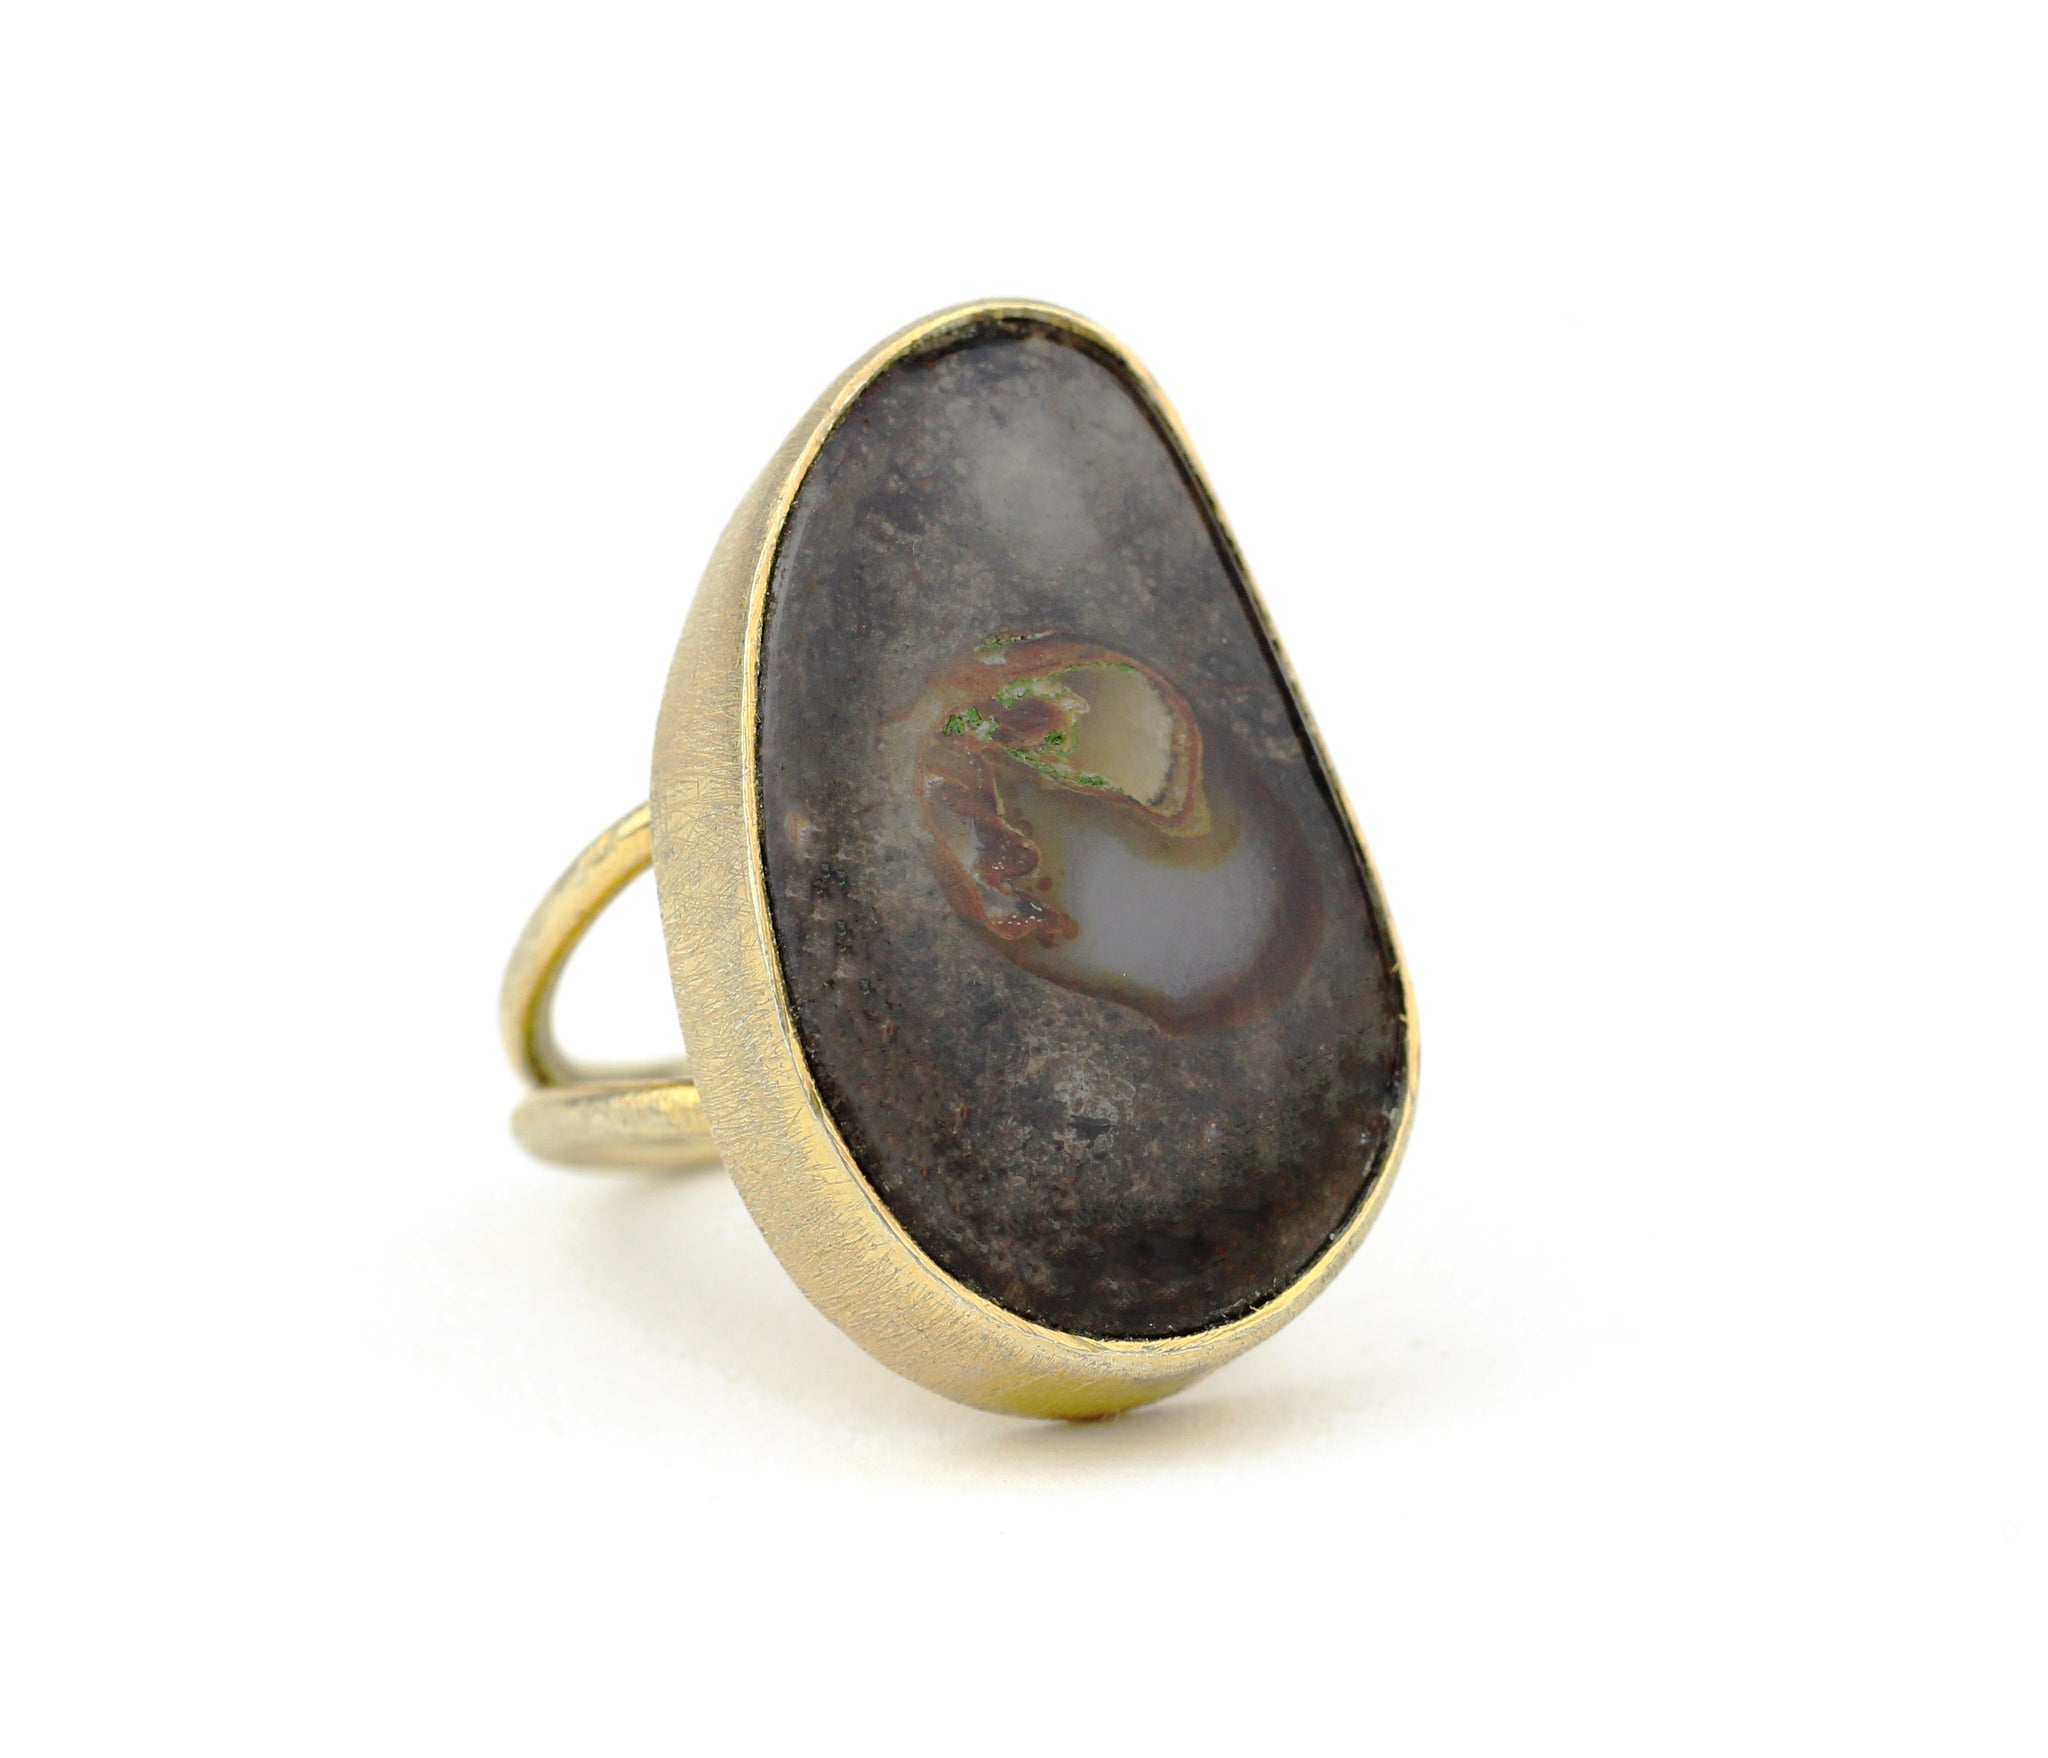 boulder opal dendritic Mook Jasper Rainforest ocean gold flake picture bumblebee Agate 10kt Gold Ring Teardrop round oval rectangle square free form opal labradorite